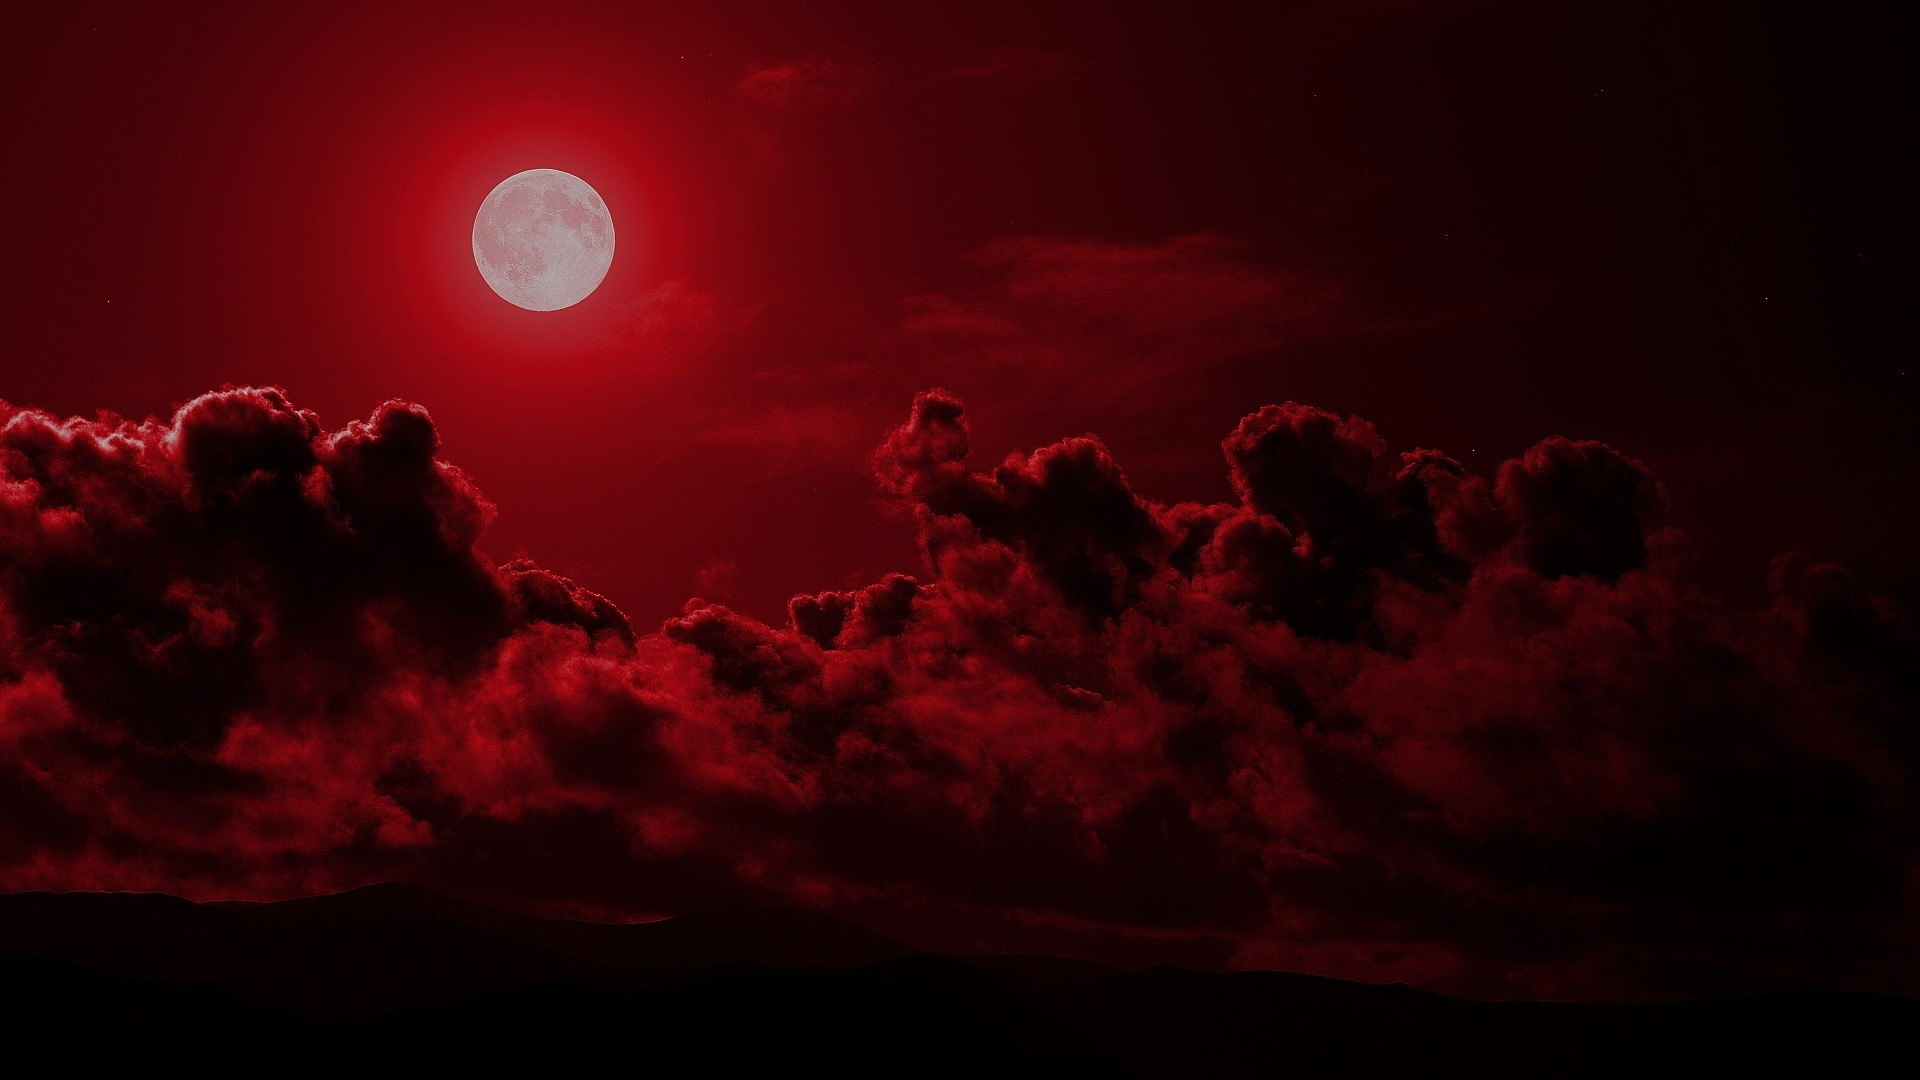 Red Moon Wallpaper: Blood Red Moon Wallpaper (55+ Images